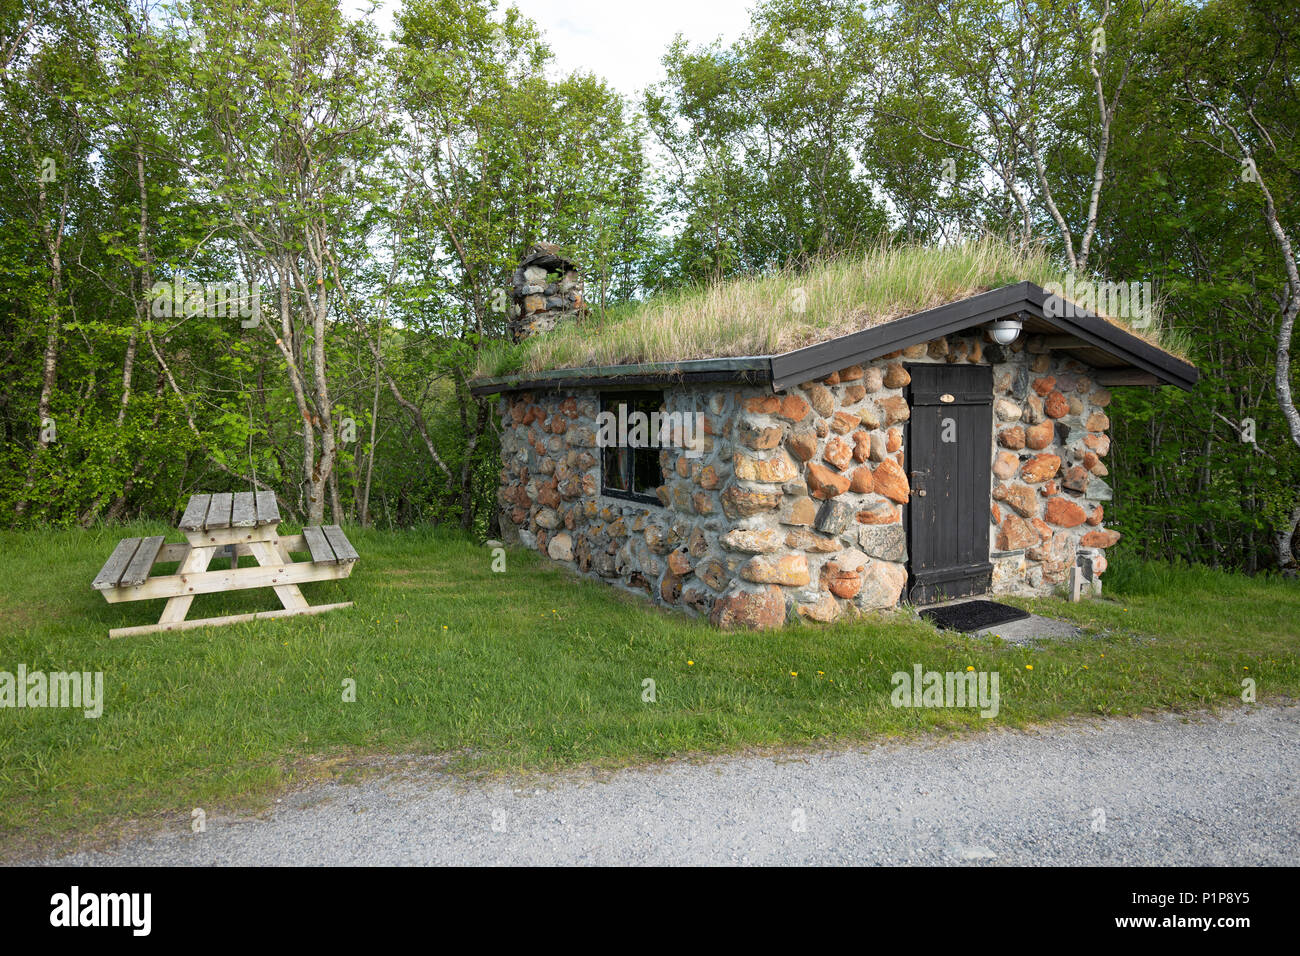 Over-night cabin at Leka camping in Norway Stock Photo